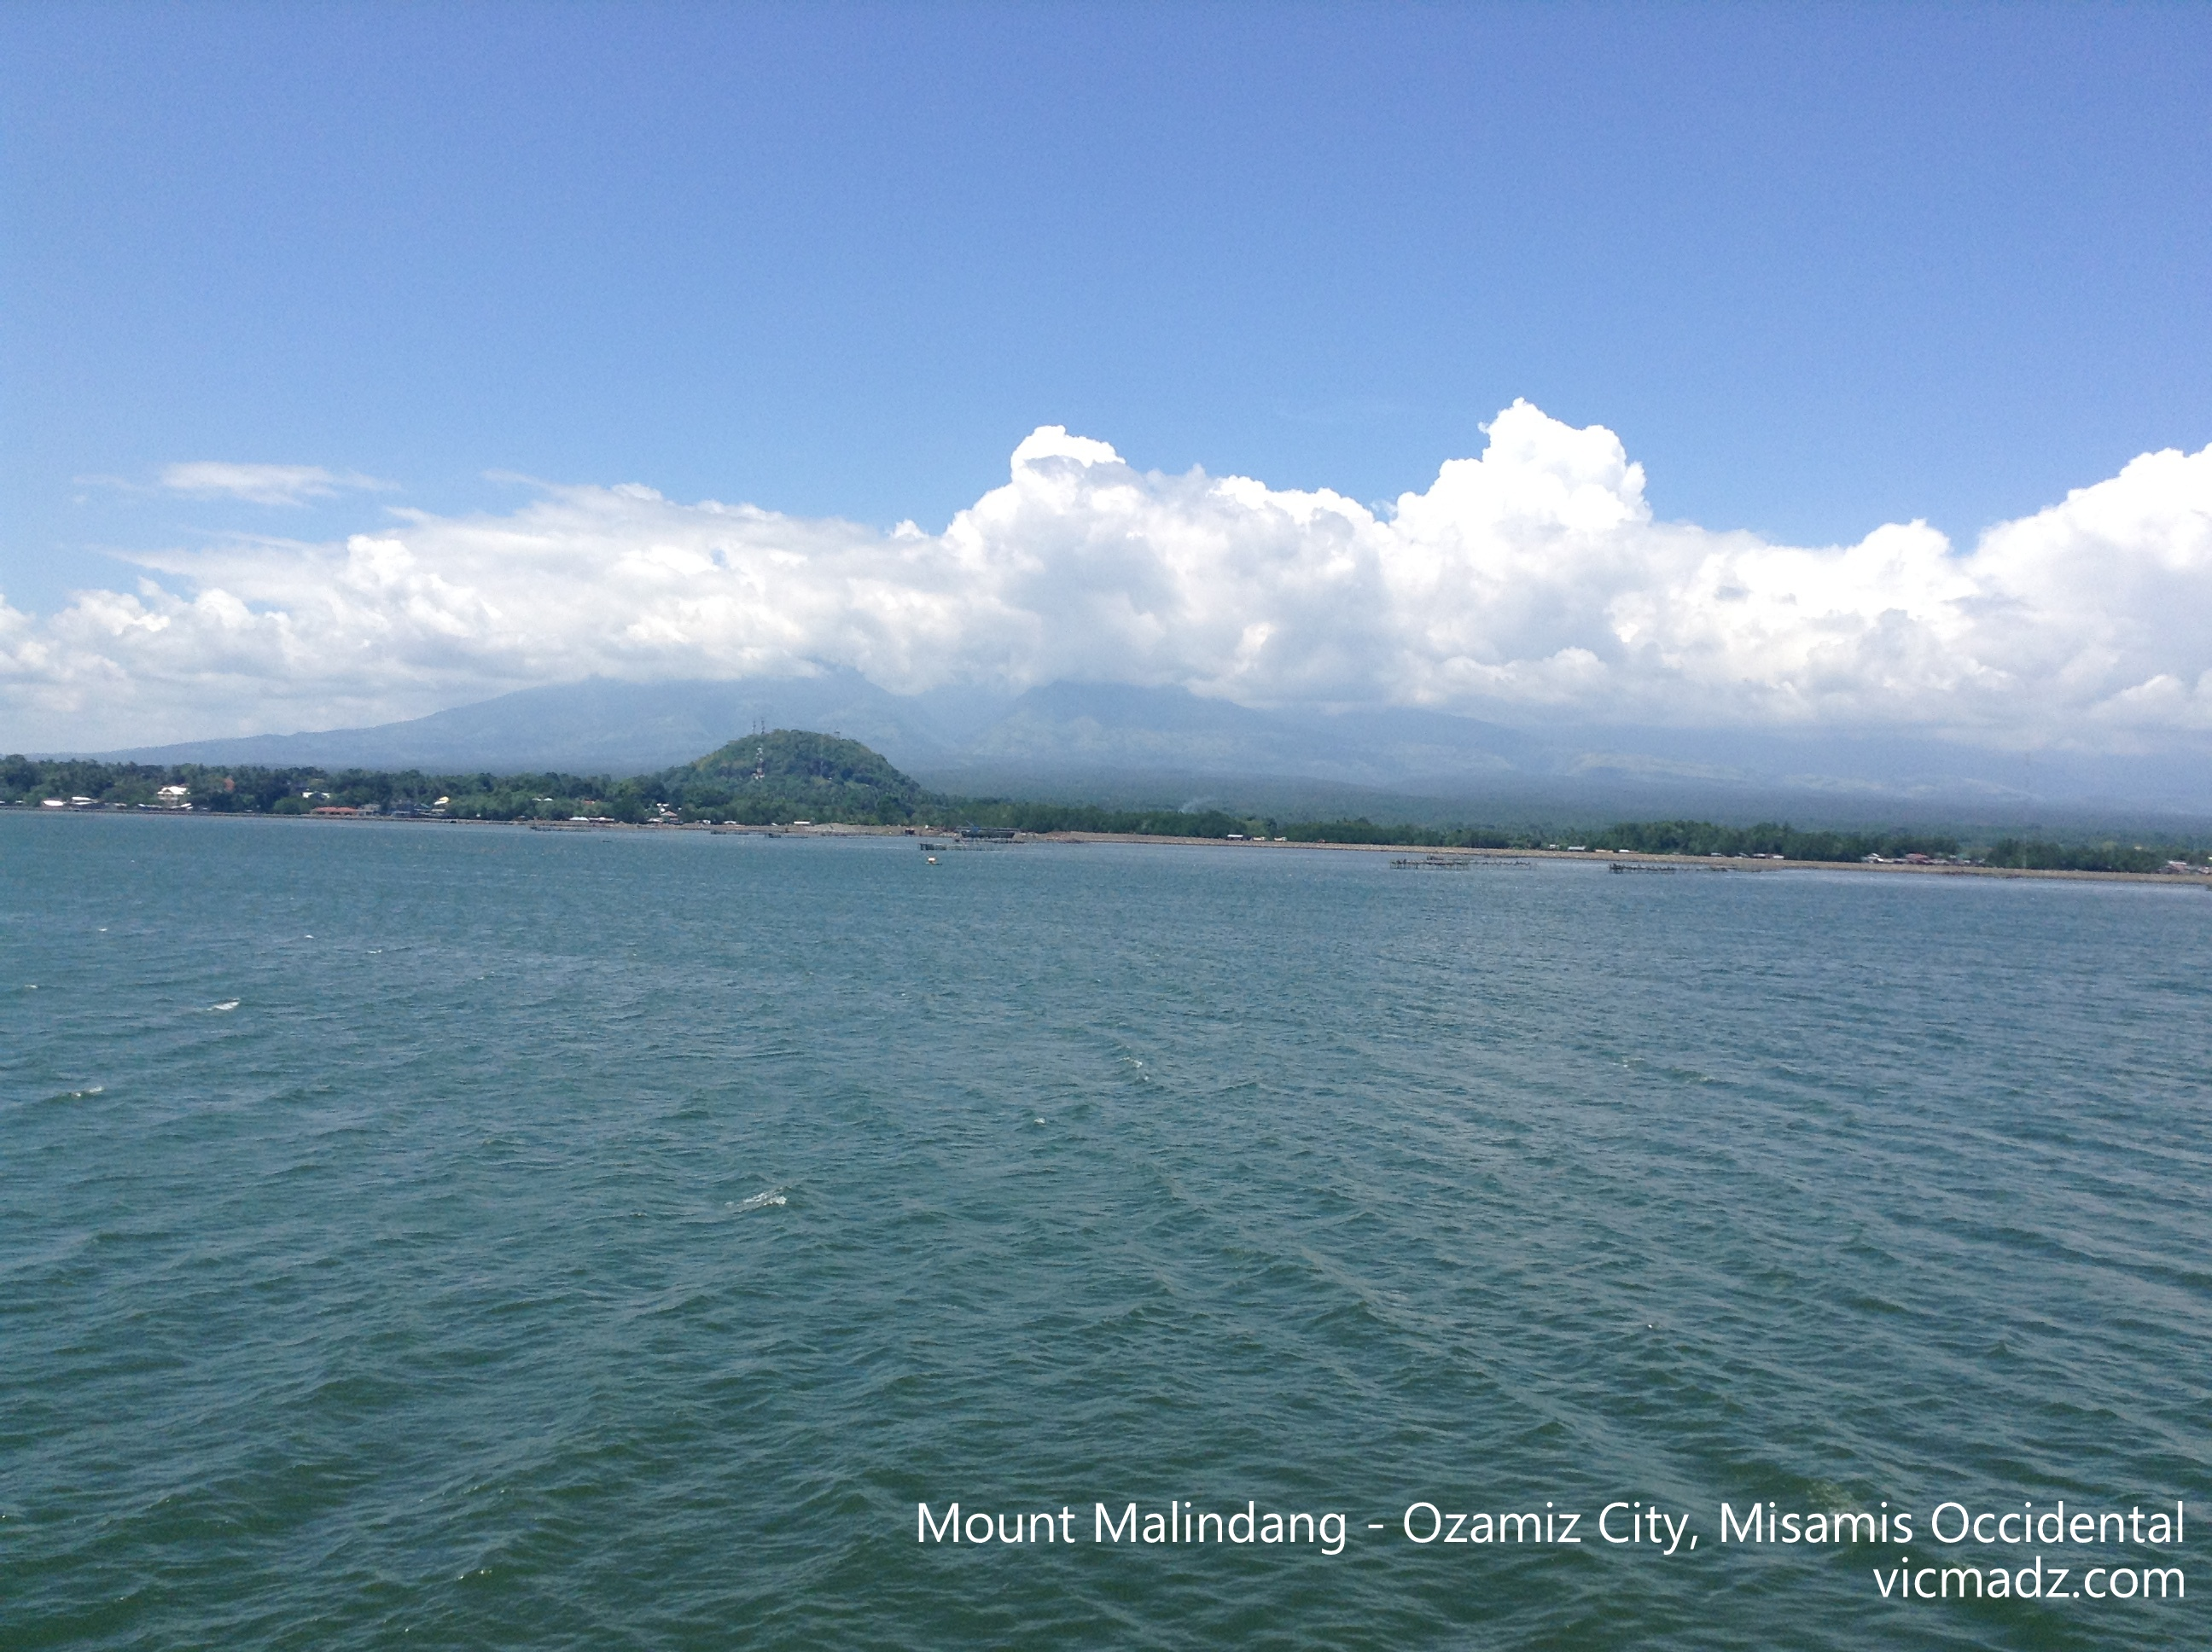 Mount Malindang Range Natural Park Misamis Occidental